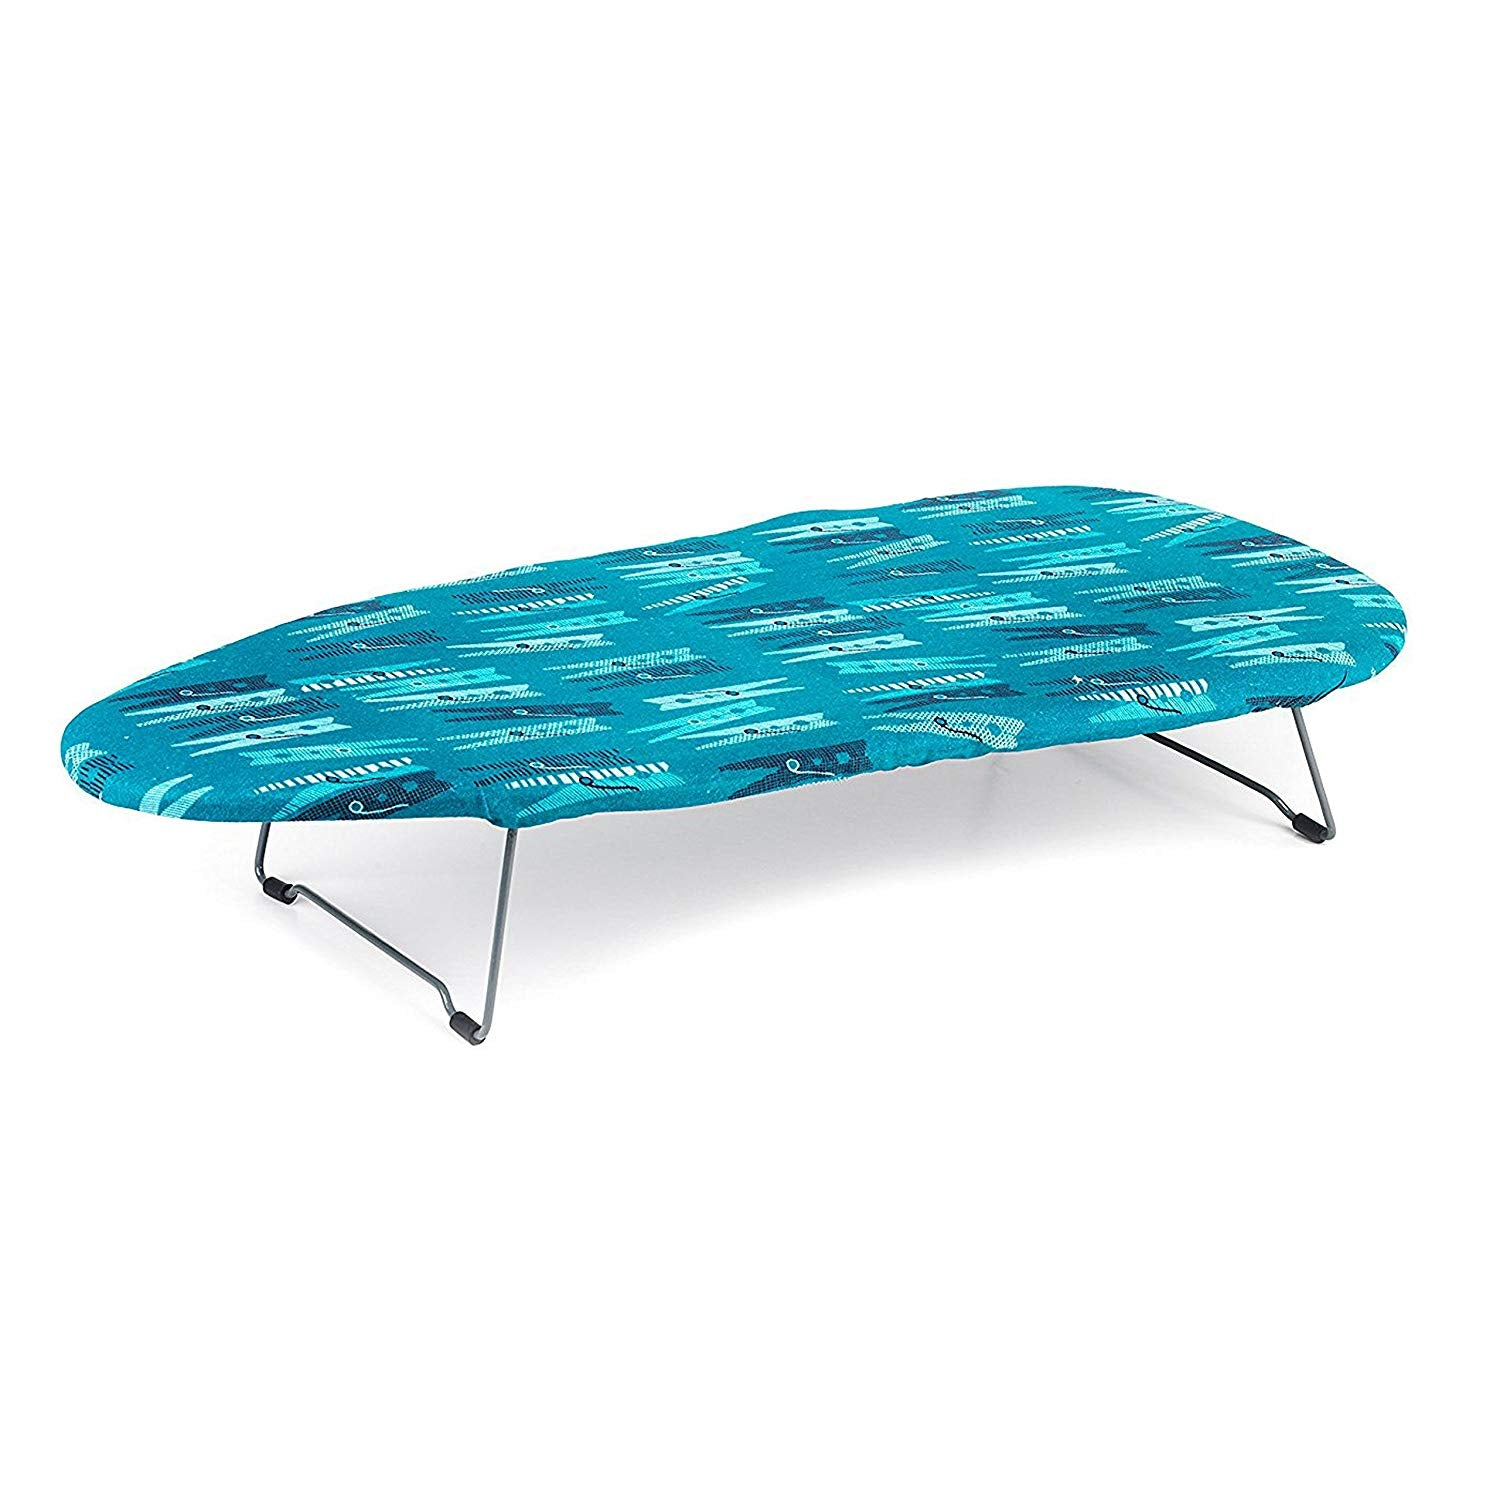 Beldray LA023735PEG Table Top Ironing Board, 76 x 33 cm, Peg Print